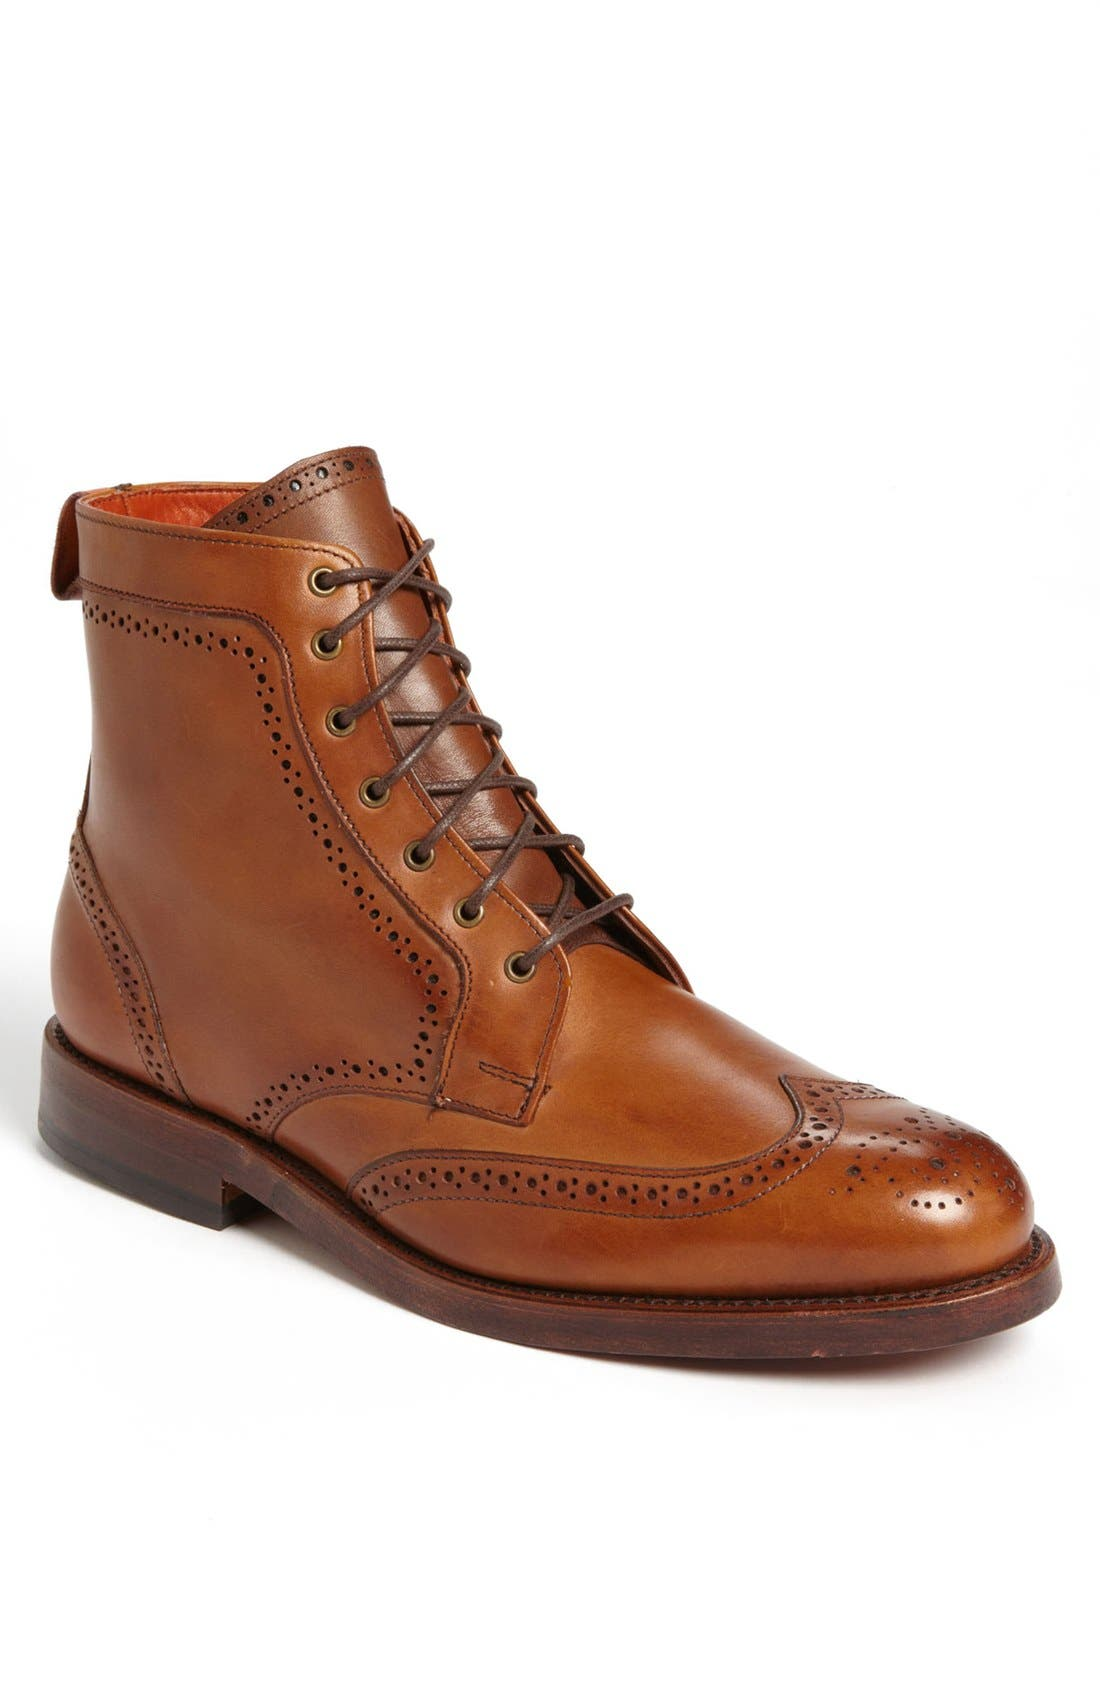 'Dalton' Water Resistant Wingtip Boot,                             Main thumbnail 1, color,                             BURNISHED WALNUT LEATHER